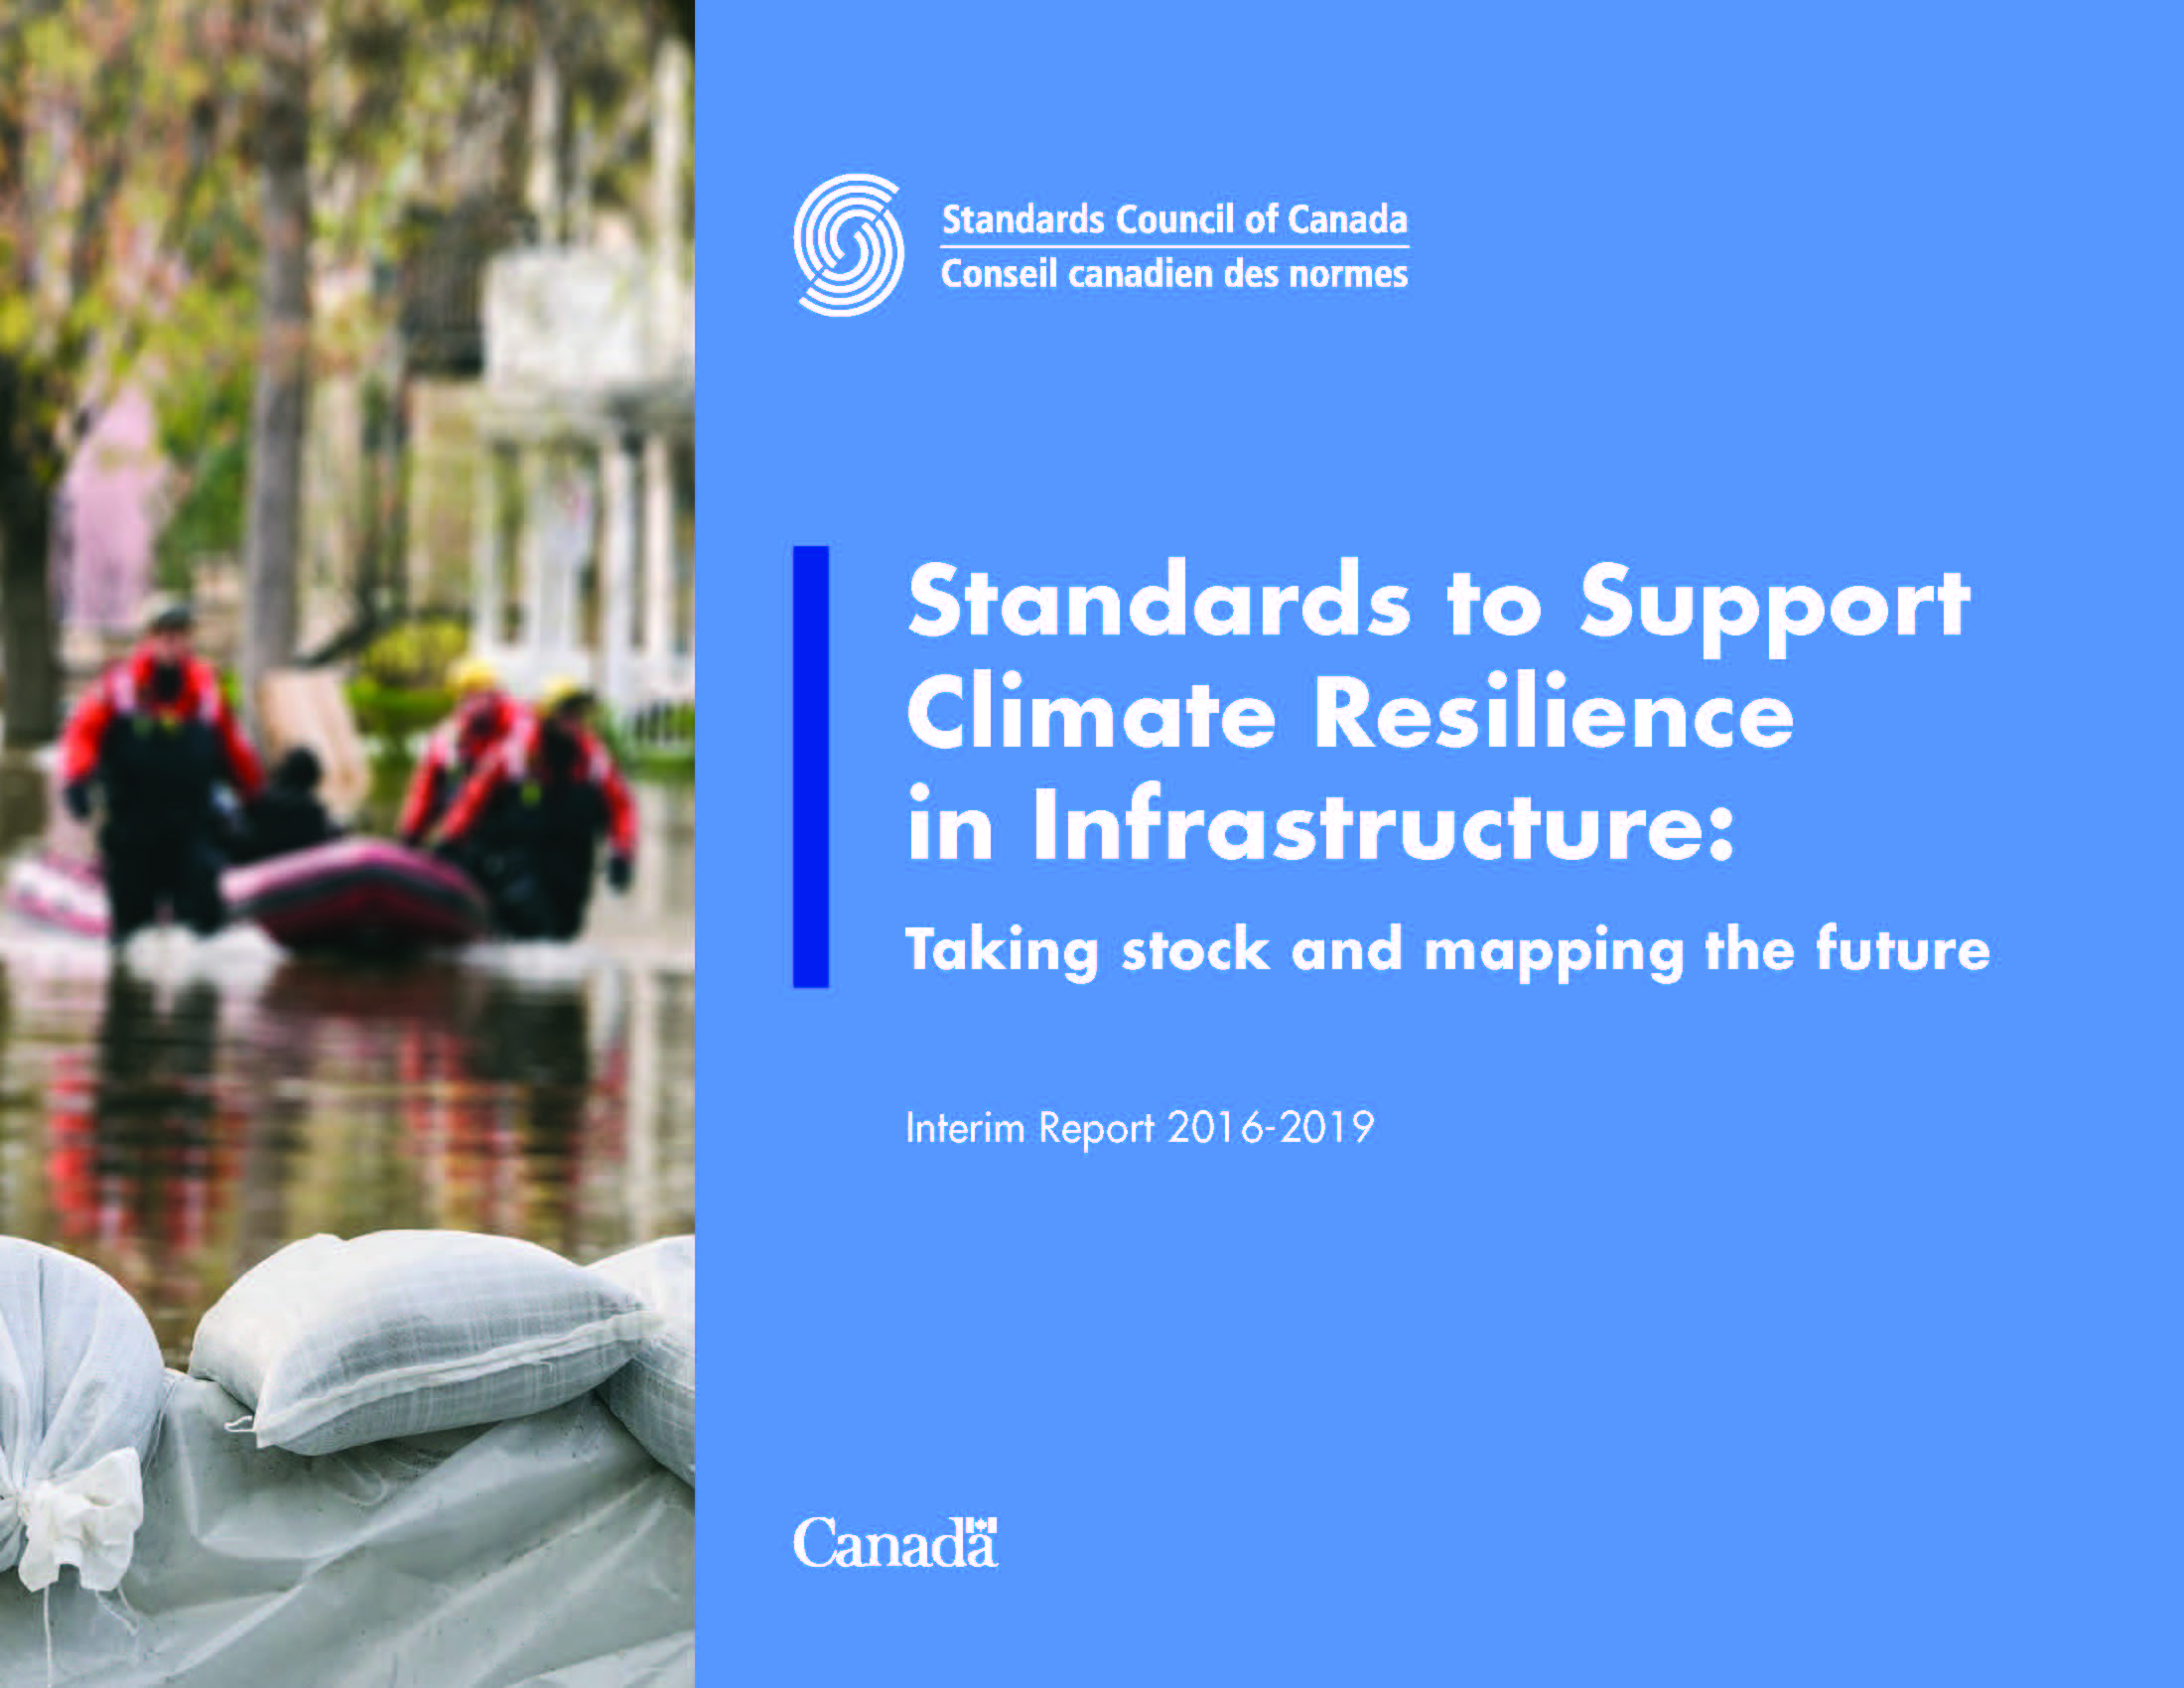 Standards to Support Climate Resilience in Infrastructure: Taking stock and mapping the future